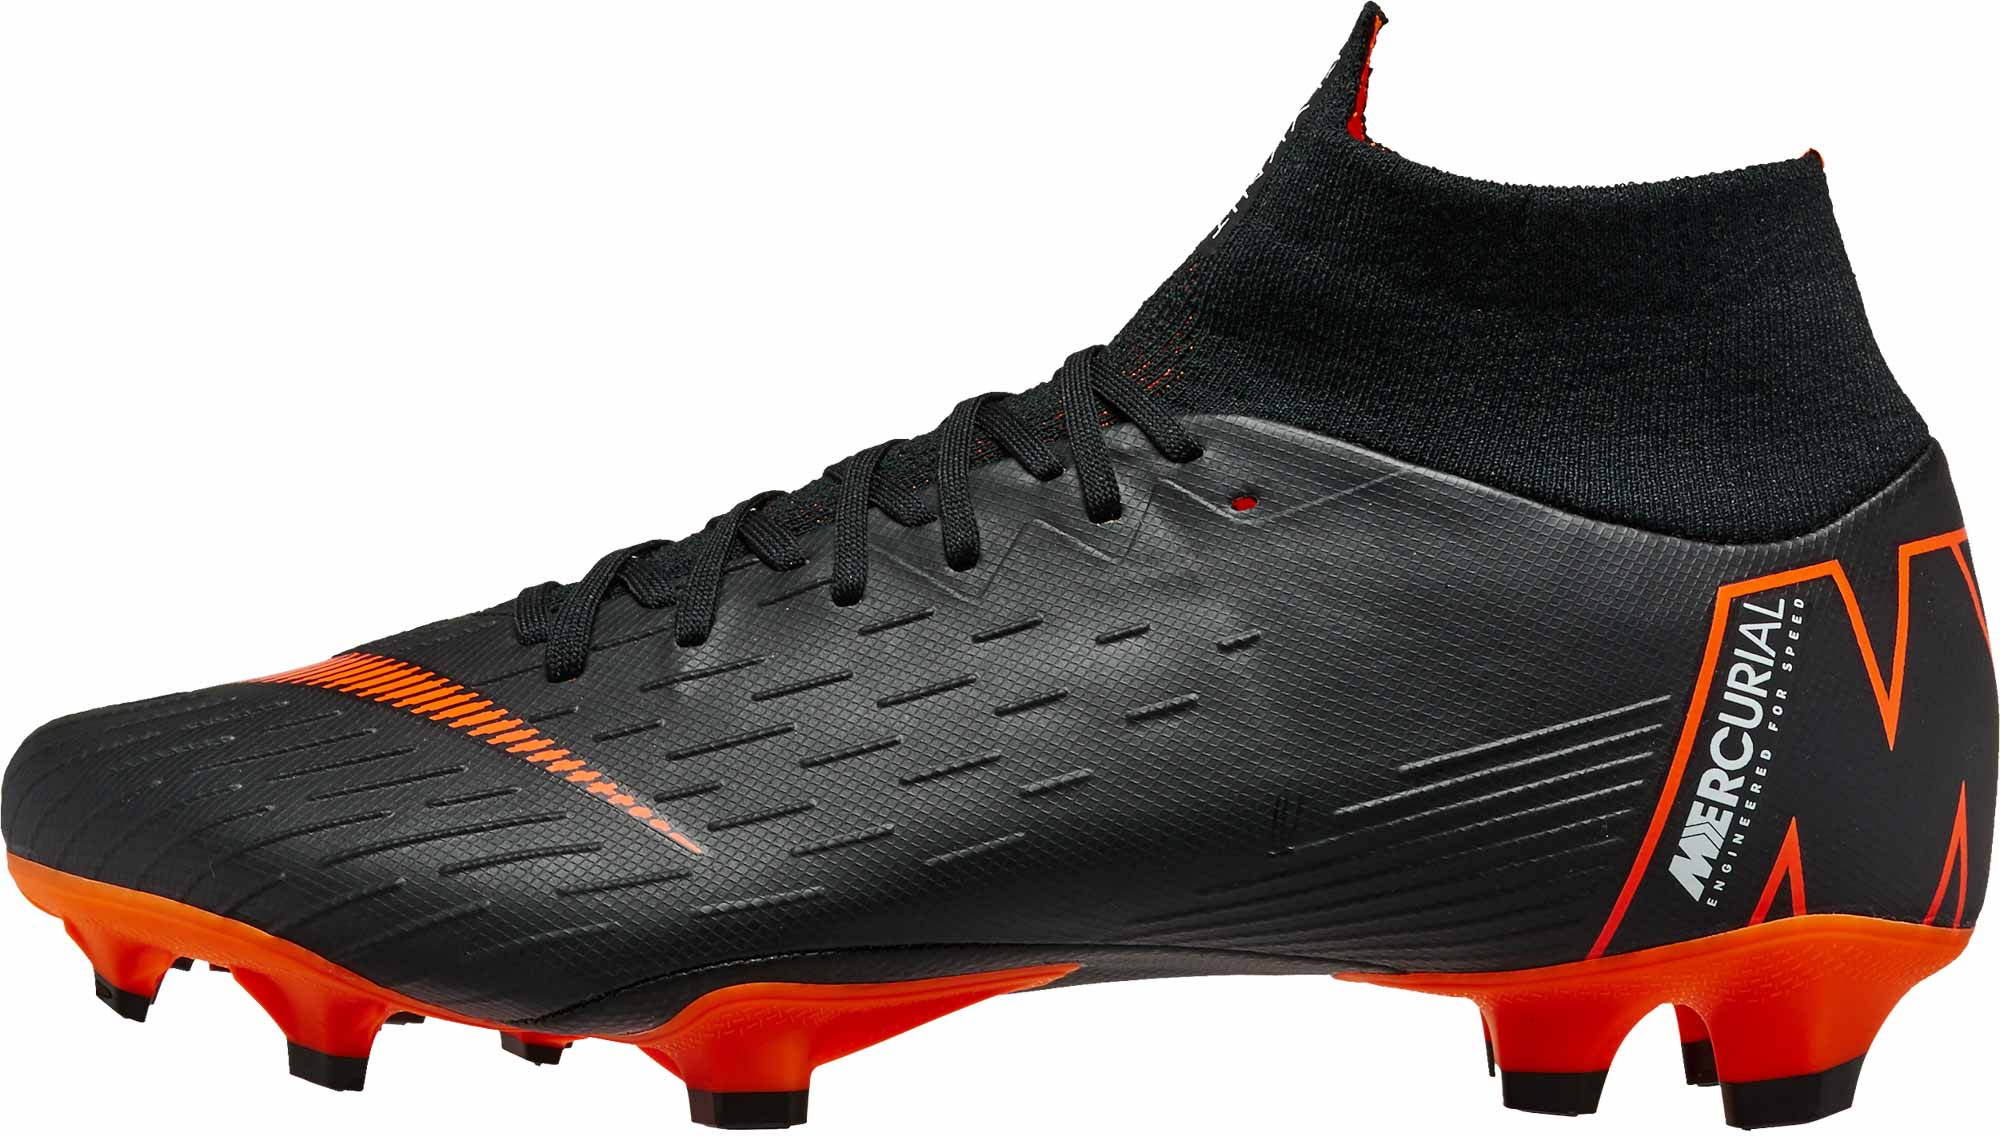 01093f13a Reviewing the Nike Mercurial Superfly 6 Pro - The Instep